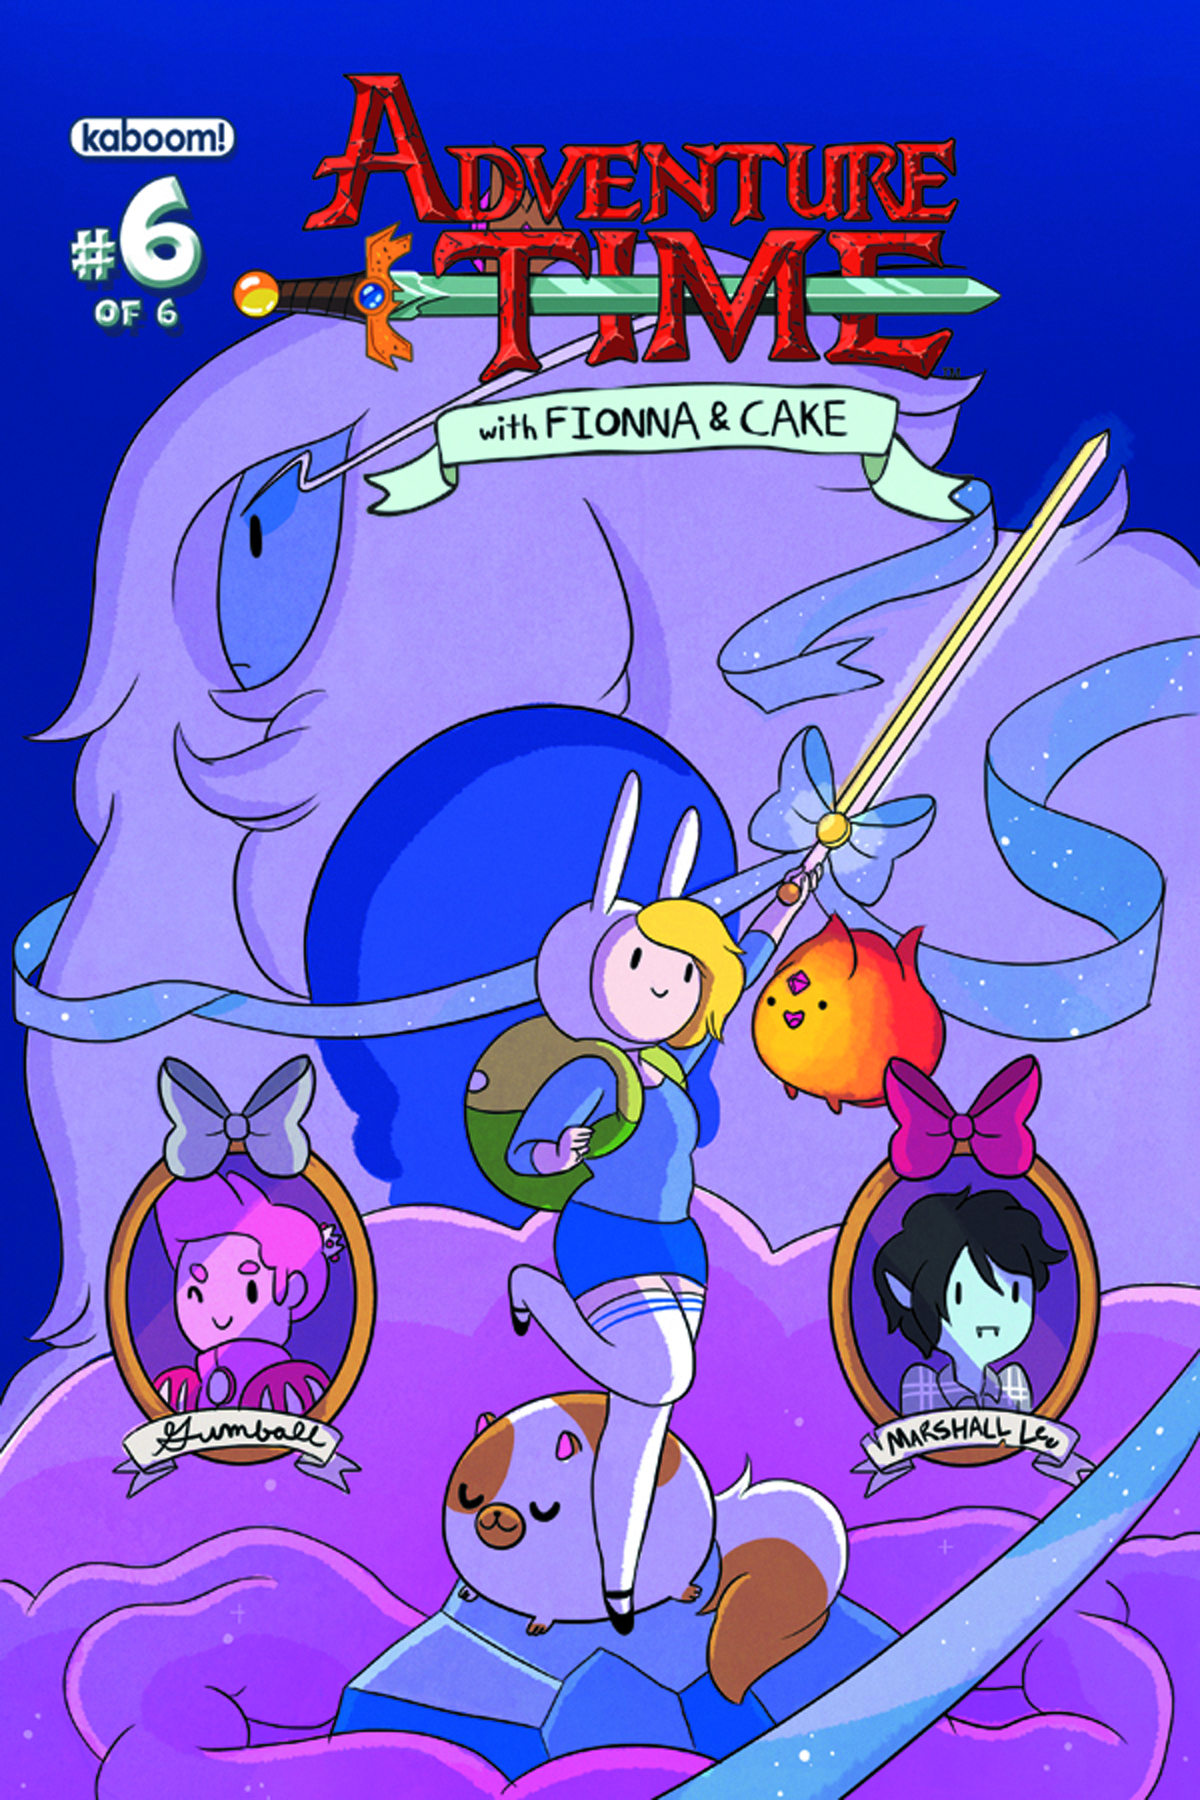 ADVENTURE TIME FIONNA & CAKE #6